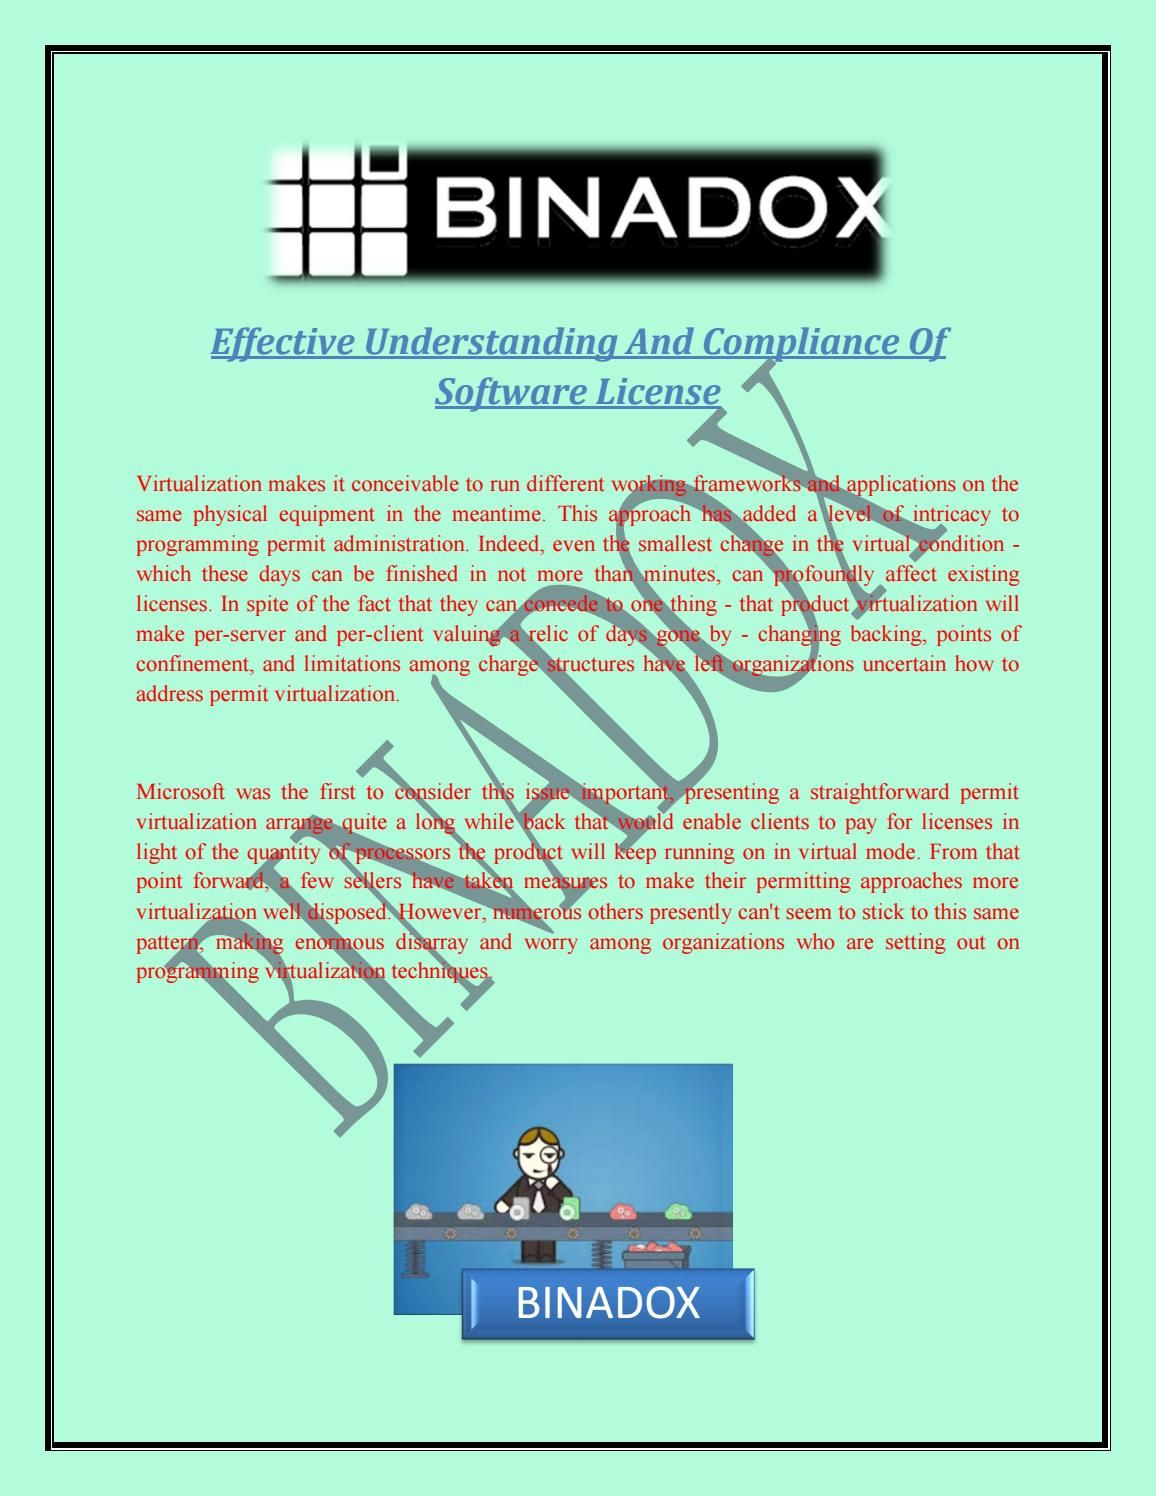 Effective understanding and compliance of software license